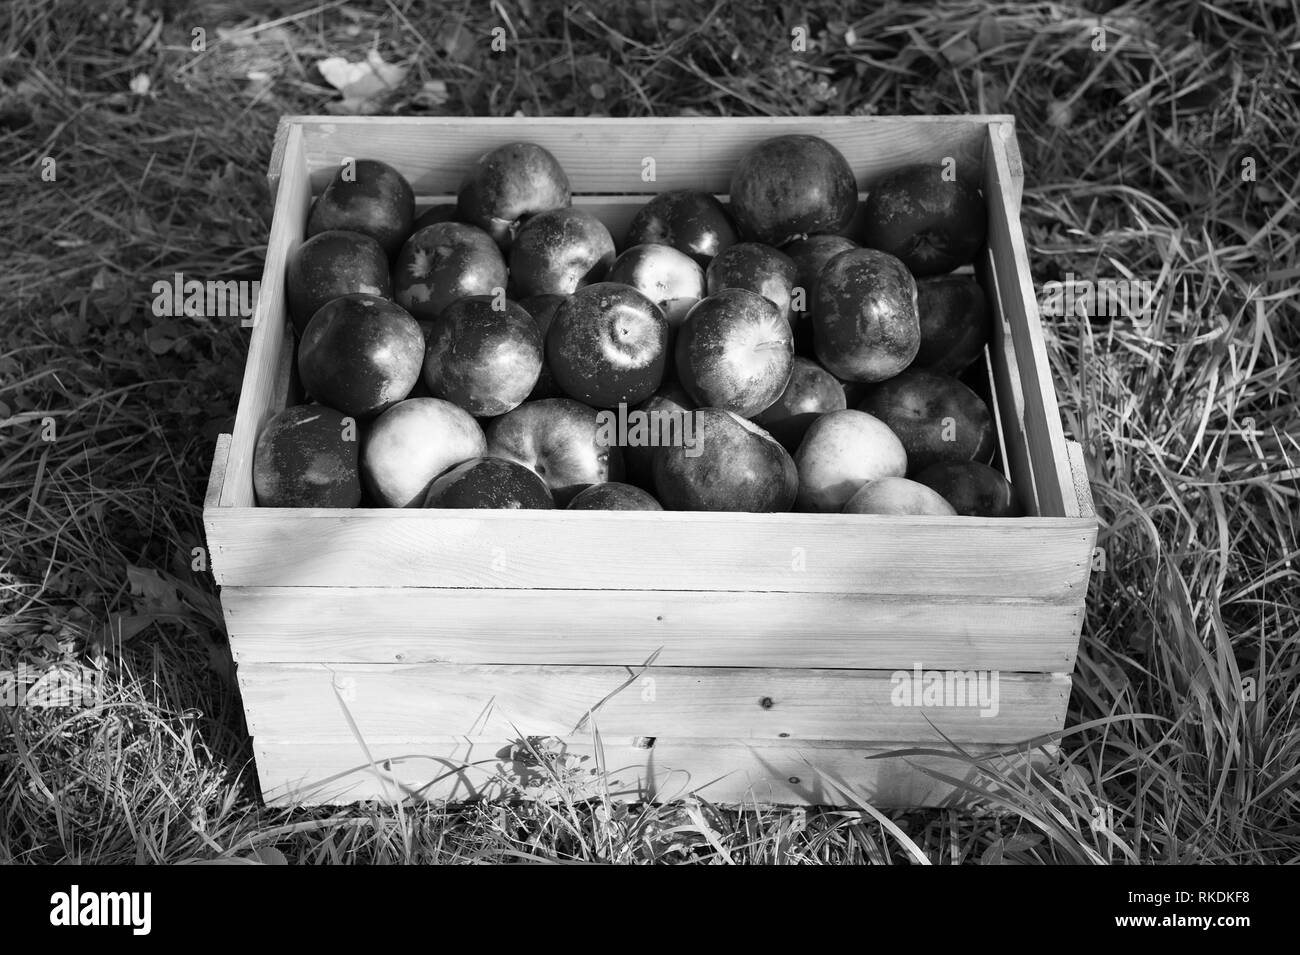 Apples red ripe fruits in wooden box on grass. Apple harvest concept. Ripe organic fruits in garden. Autumn fruit and vitamin. Apples harvest. Fall apples harvest in rustic box. Juice producing. - Stock Image